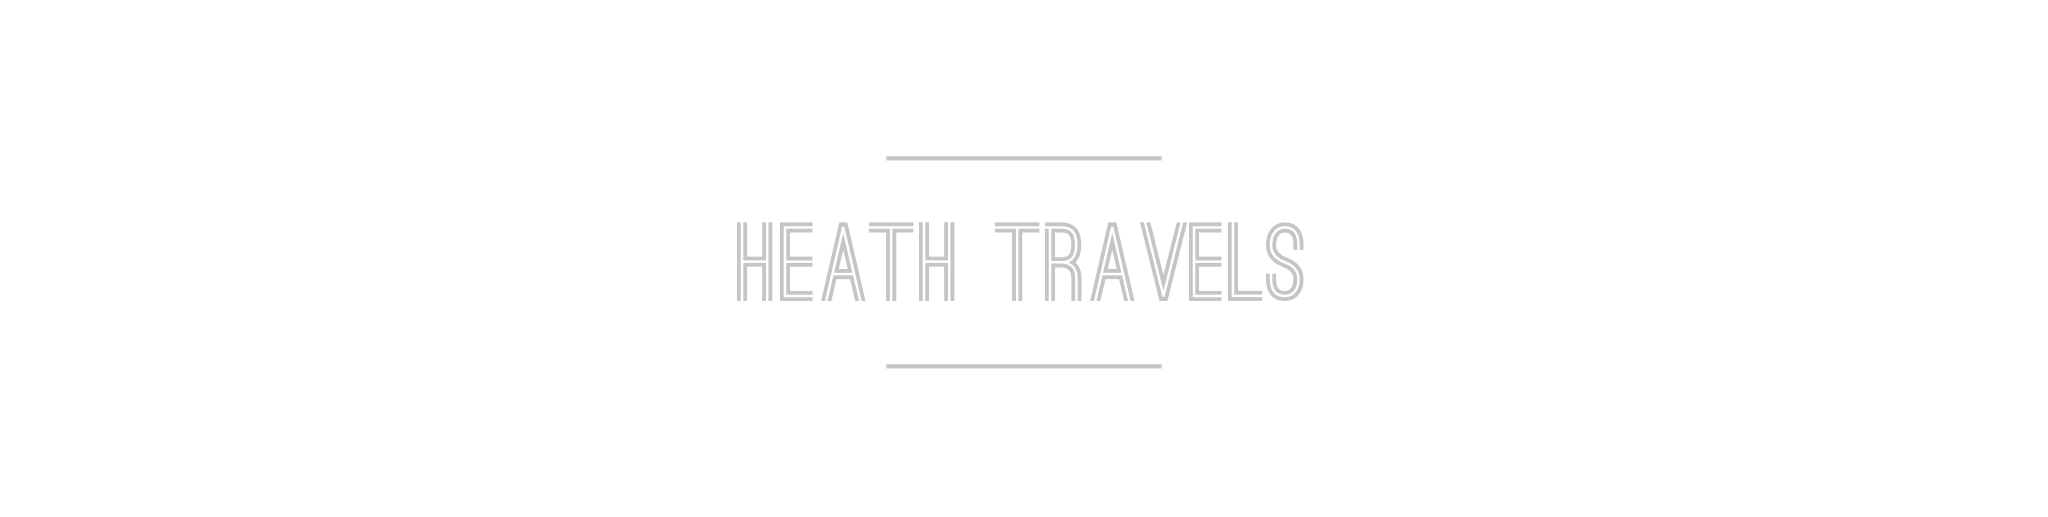 Heath Travels